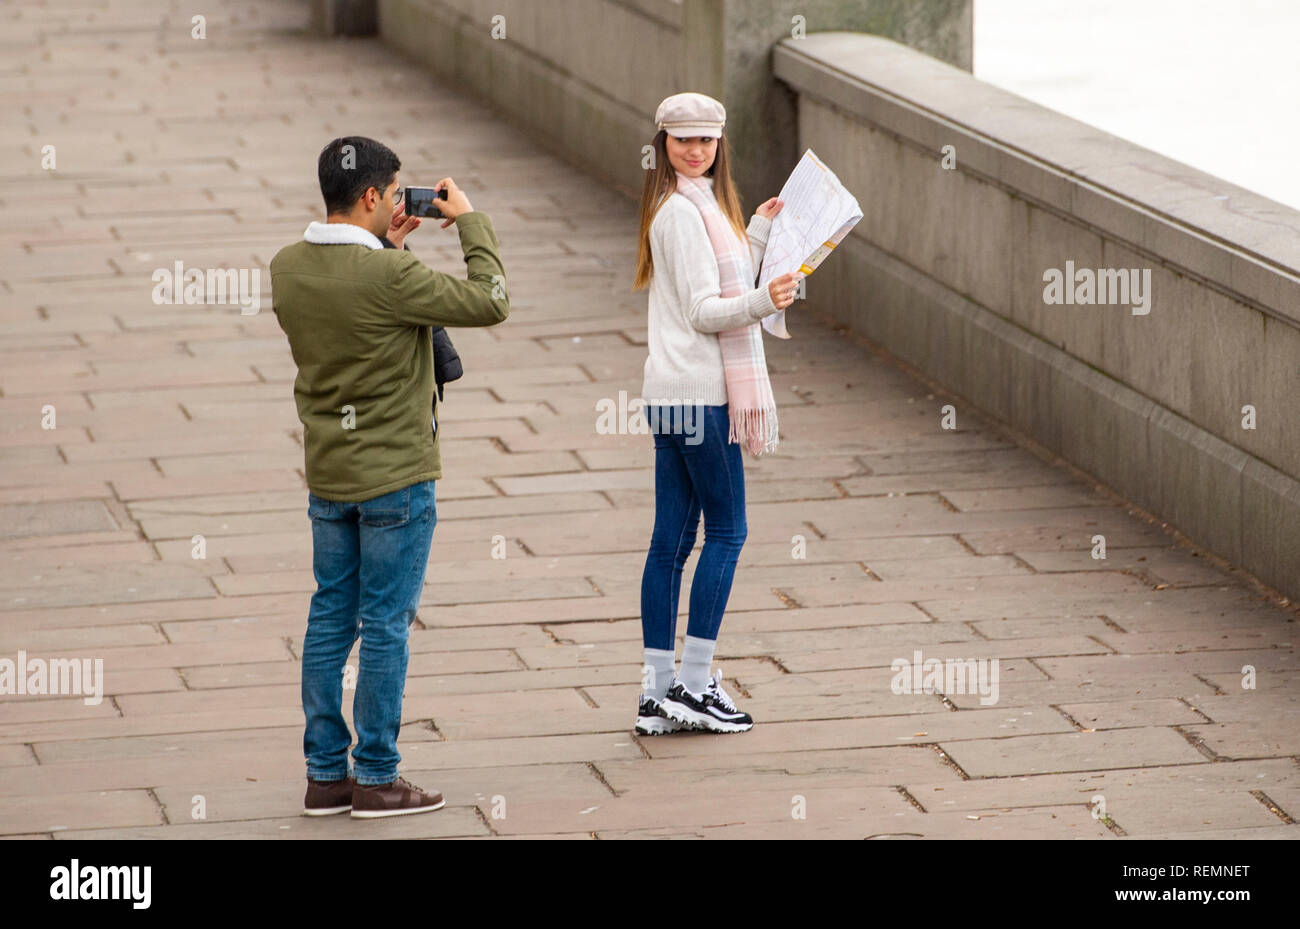 Young female tourist looking at a map being photographed by friend on the South Bank by The River Thames in London UK Stock Photo